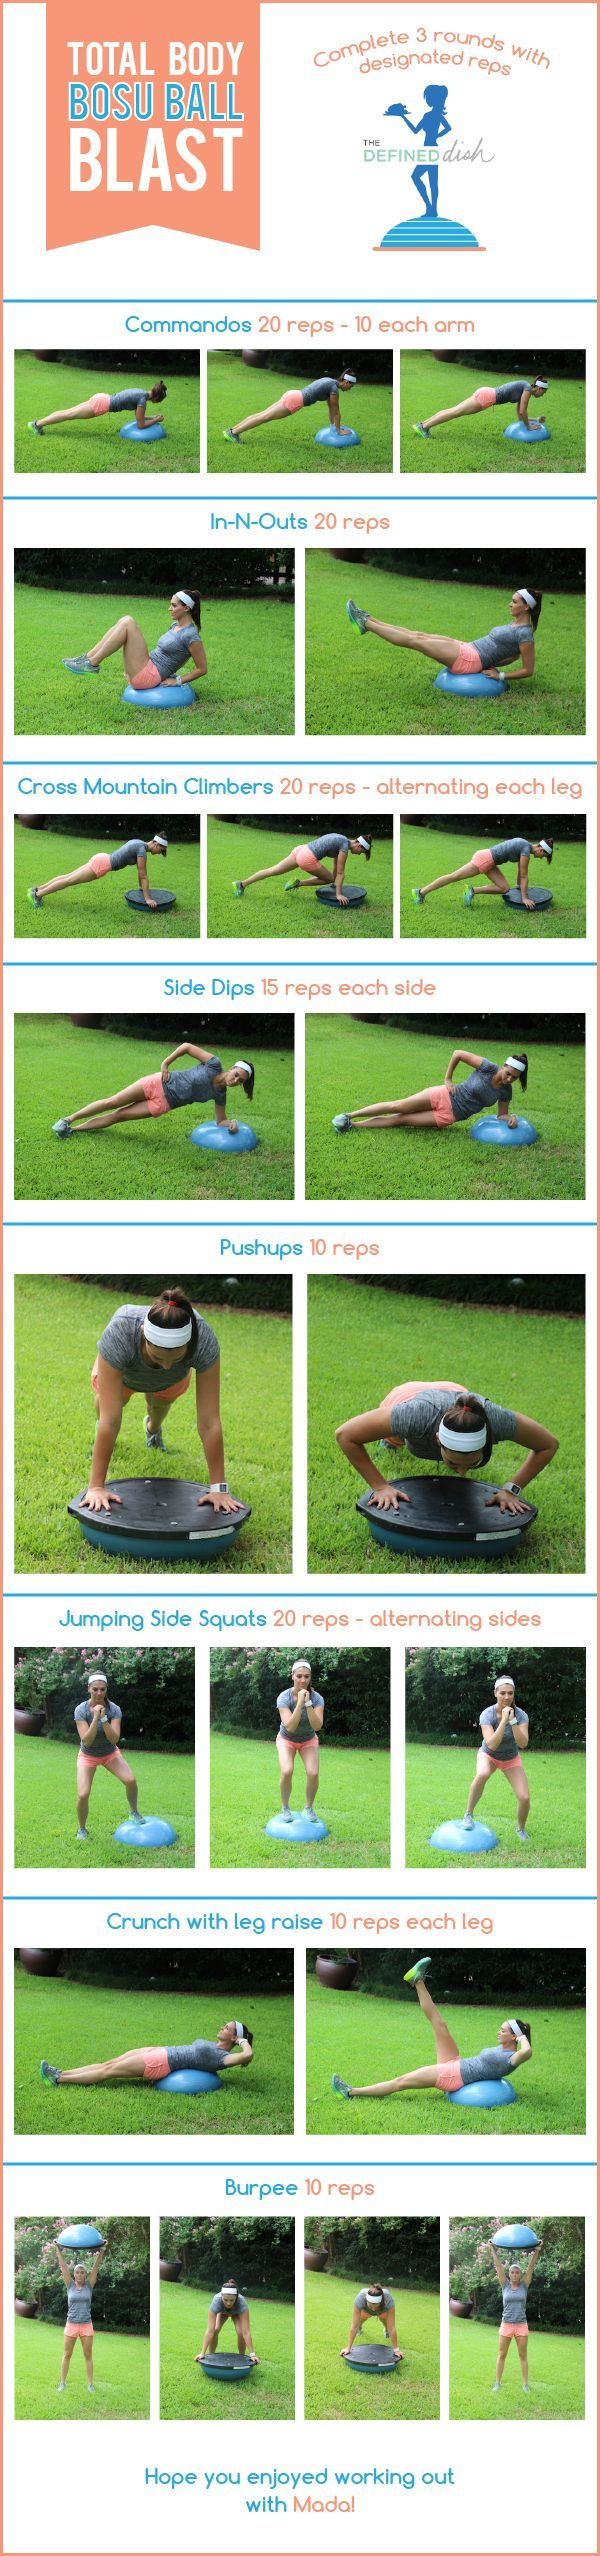 Bosu Ball Workout. A full body fitness routine designed to help you get strong and lean.